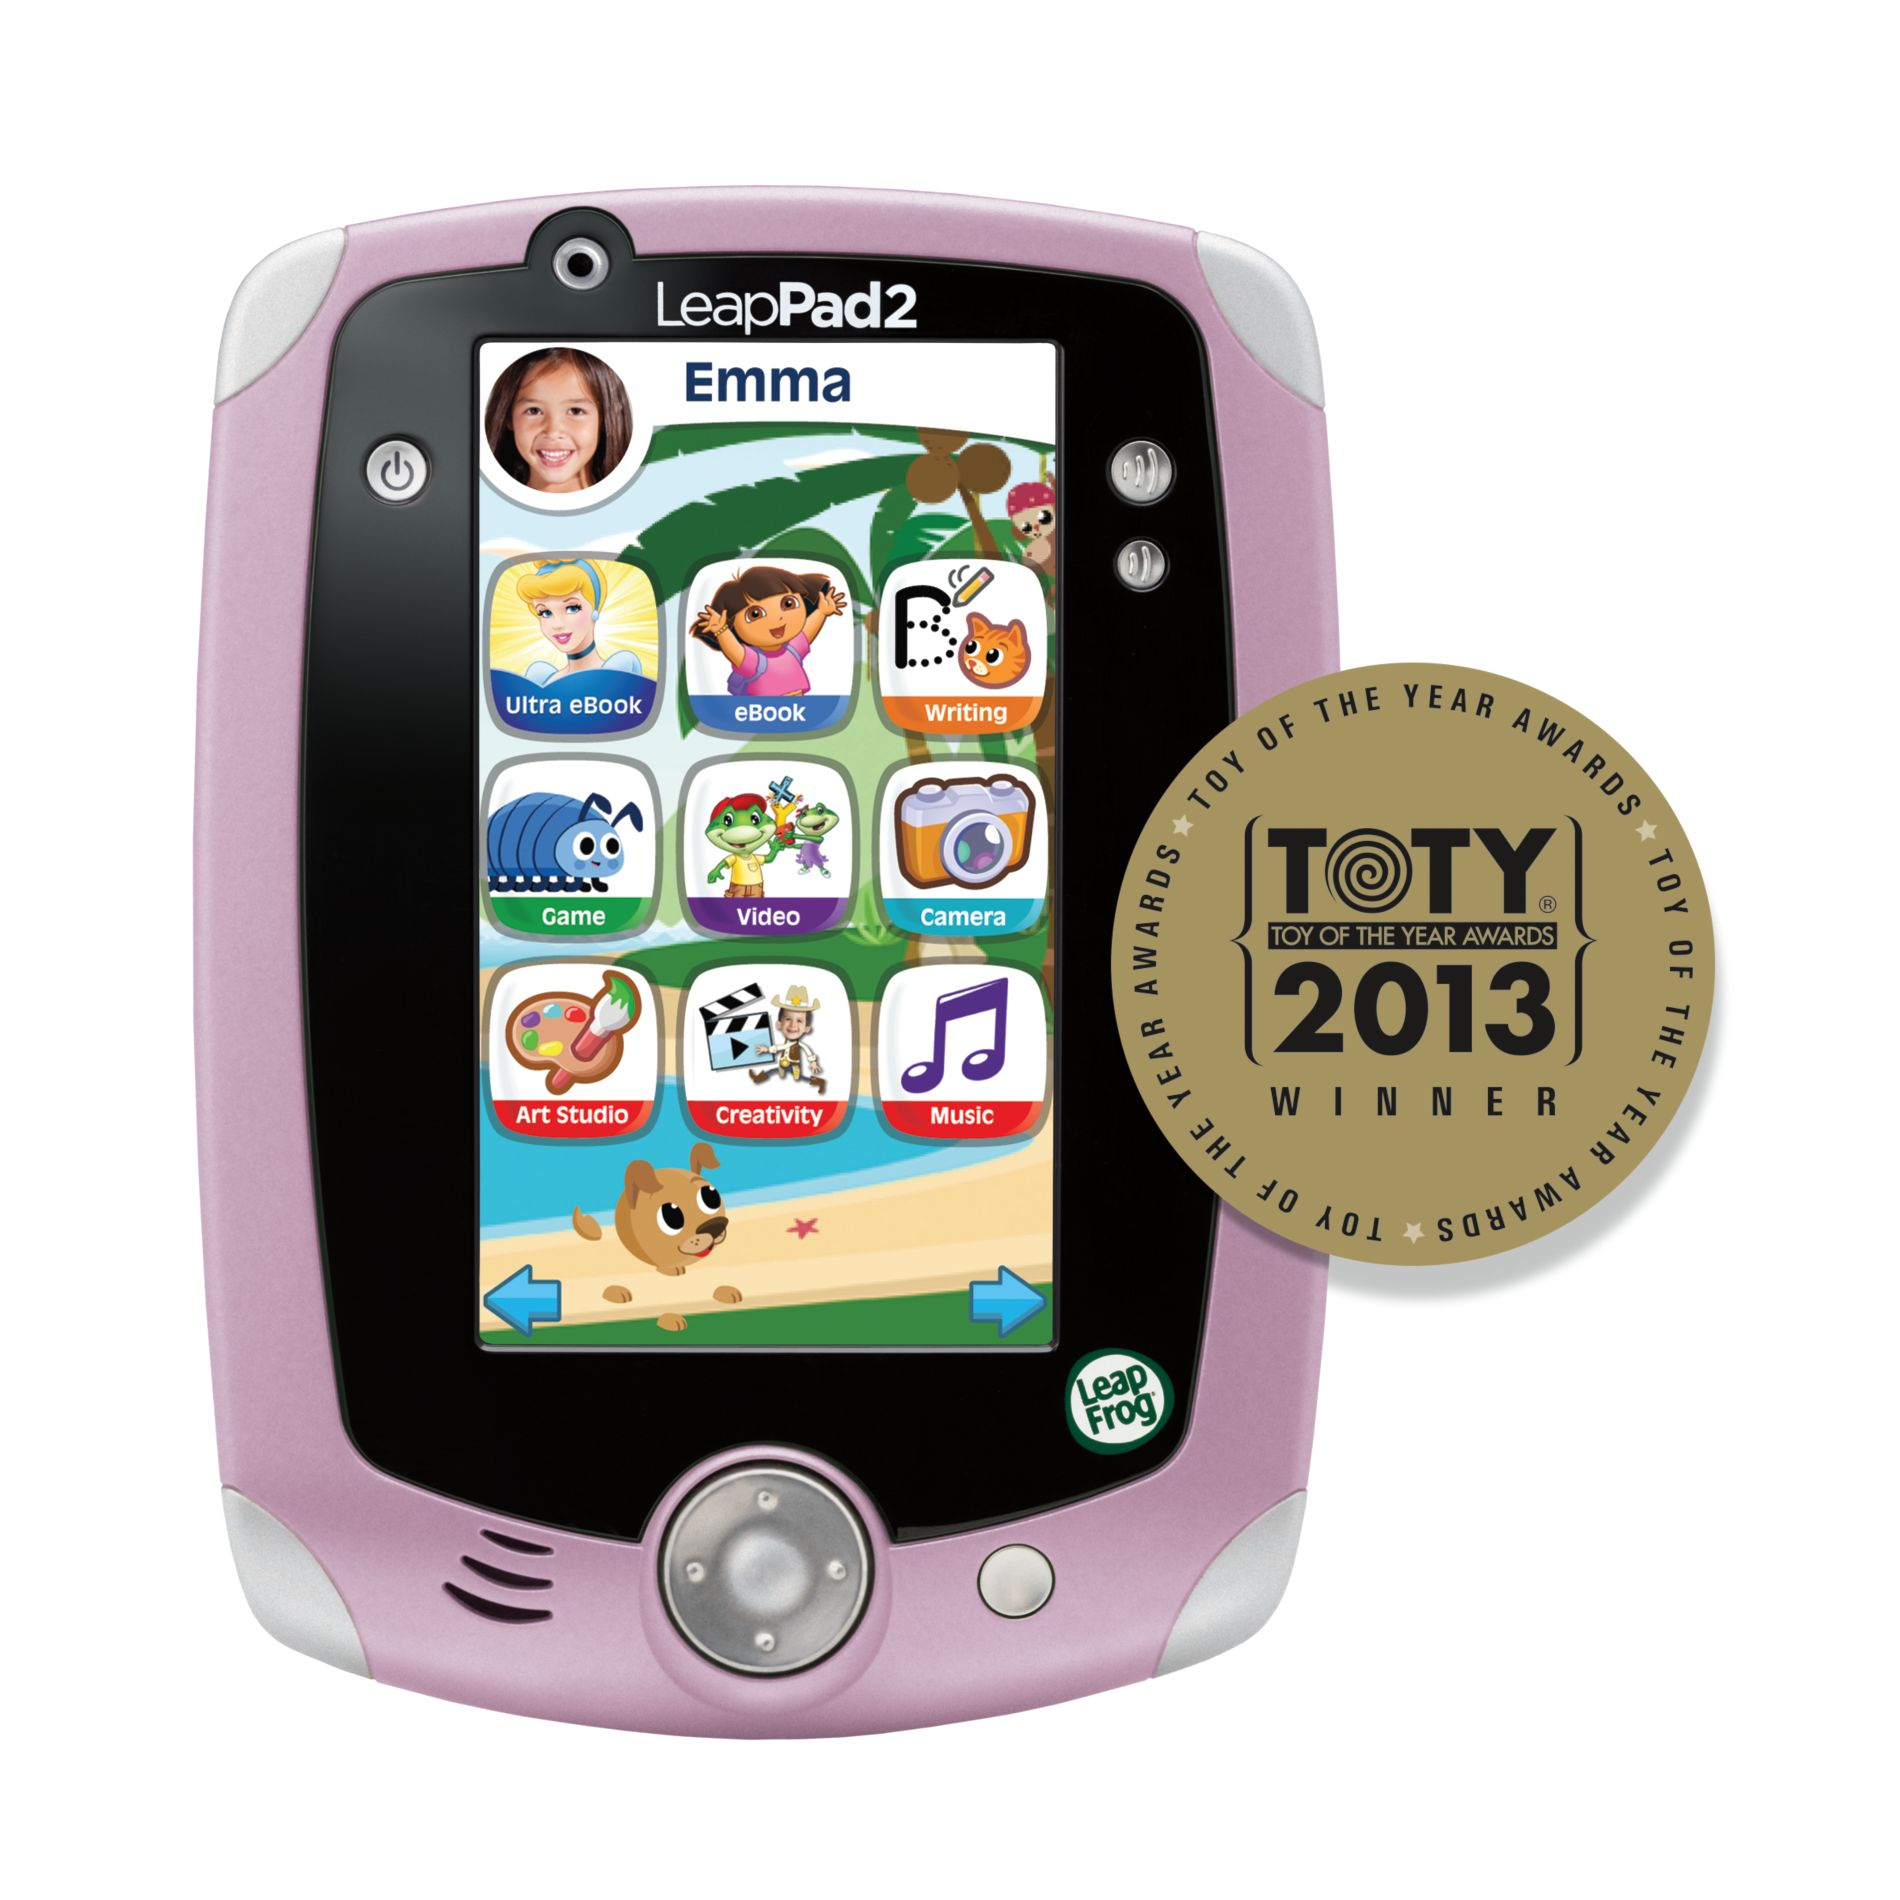 LeapPad2 Explorer Kids' Learning Tablet, Pink